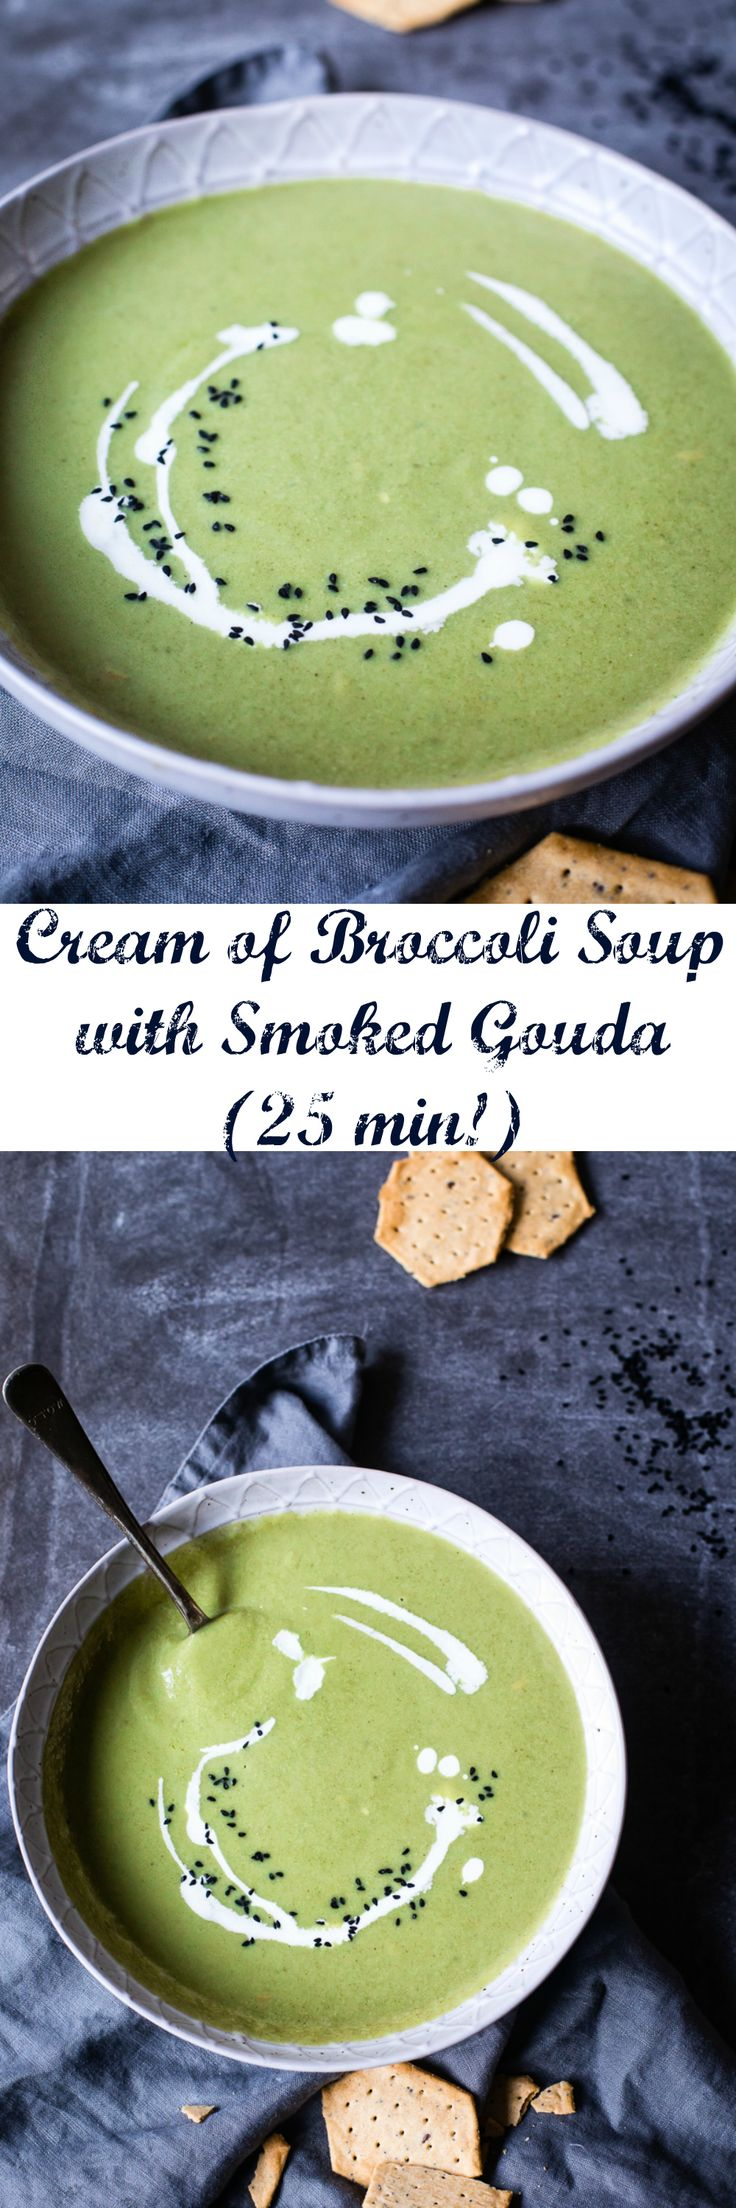 This delicious Cream of Broccoli soup comes with a short ingredient list and even shorter cooking time!